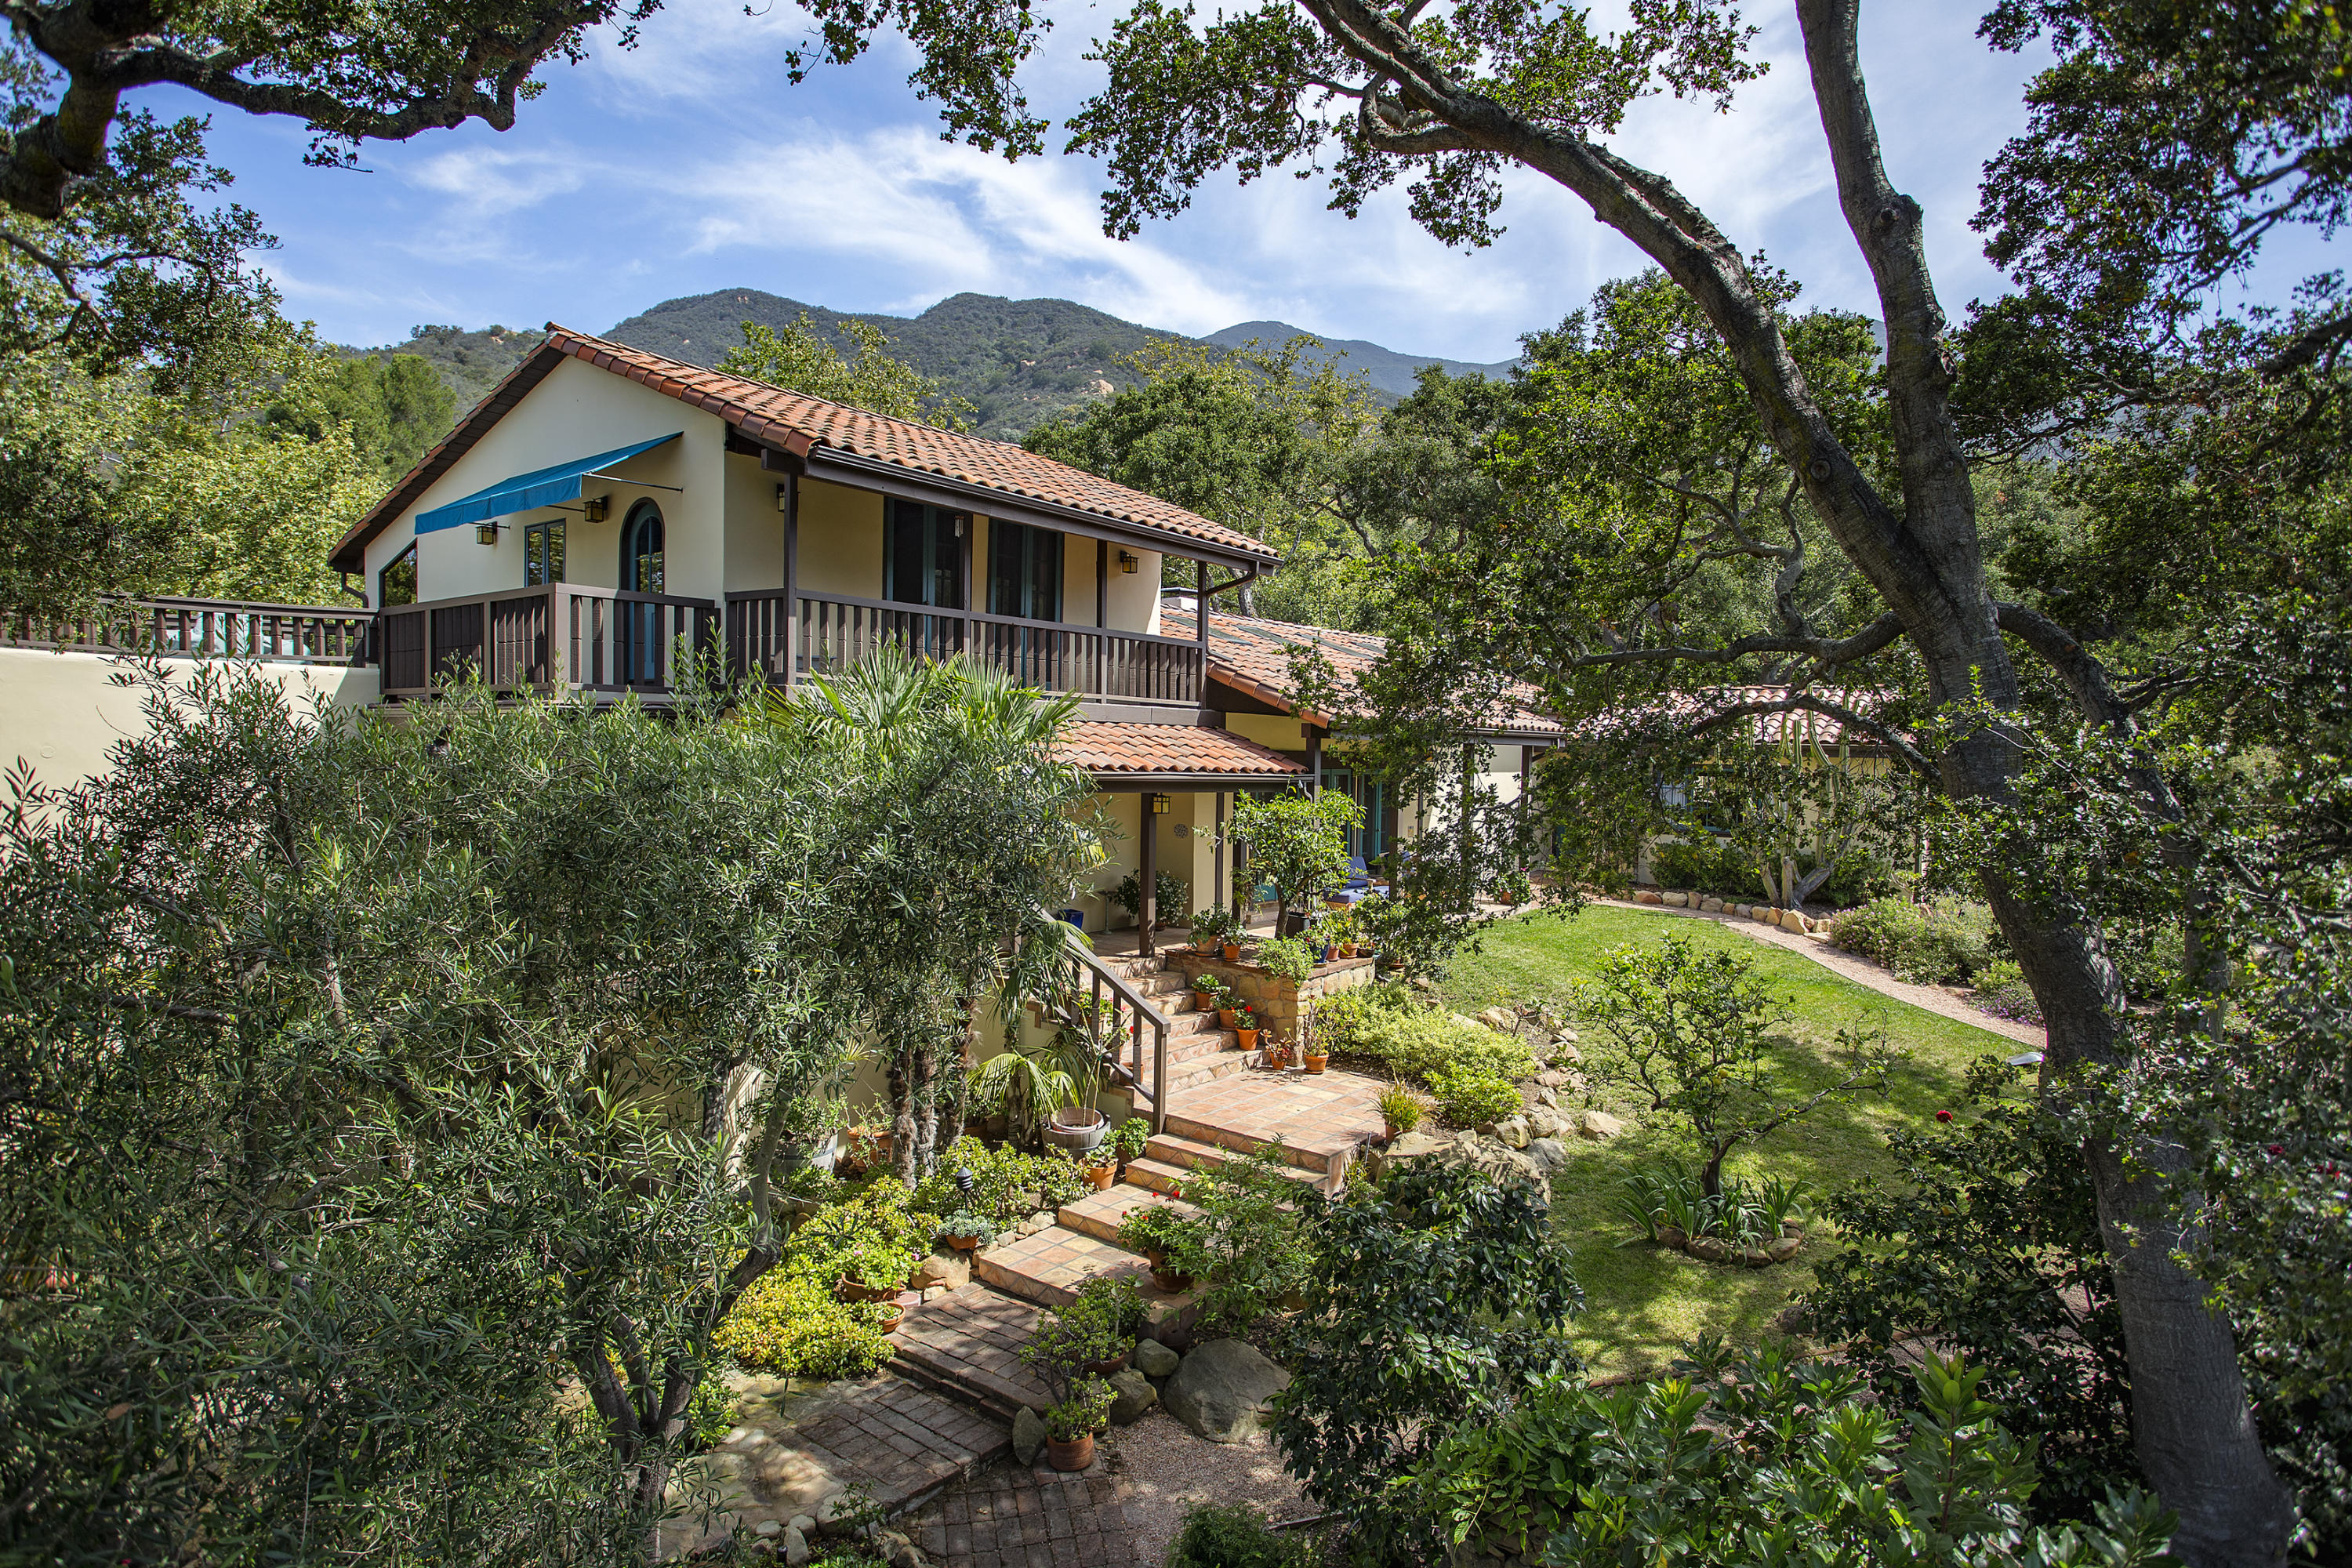 Property photo for 999 Hot Springs Rd Santa Barbara, California 93108 - 16-2036